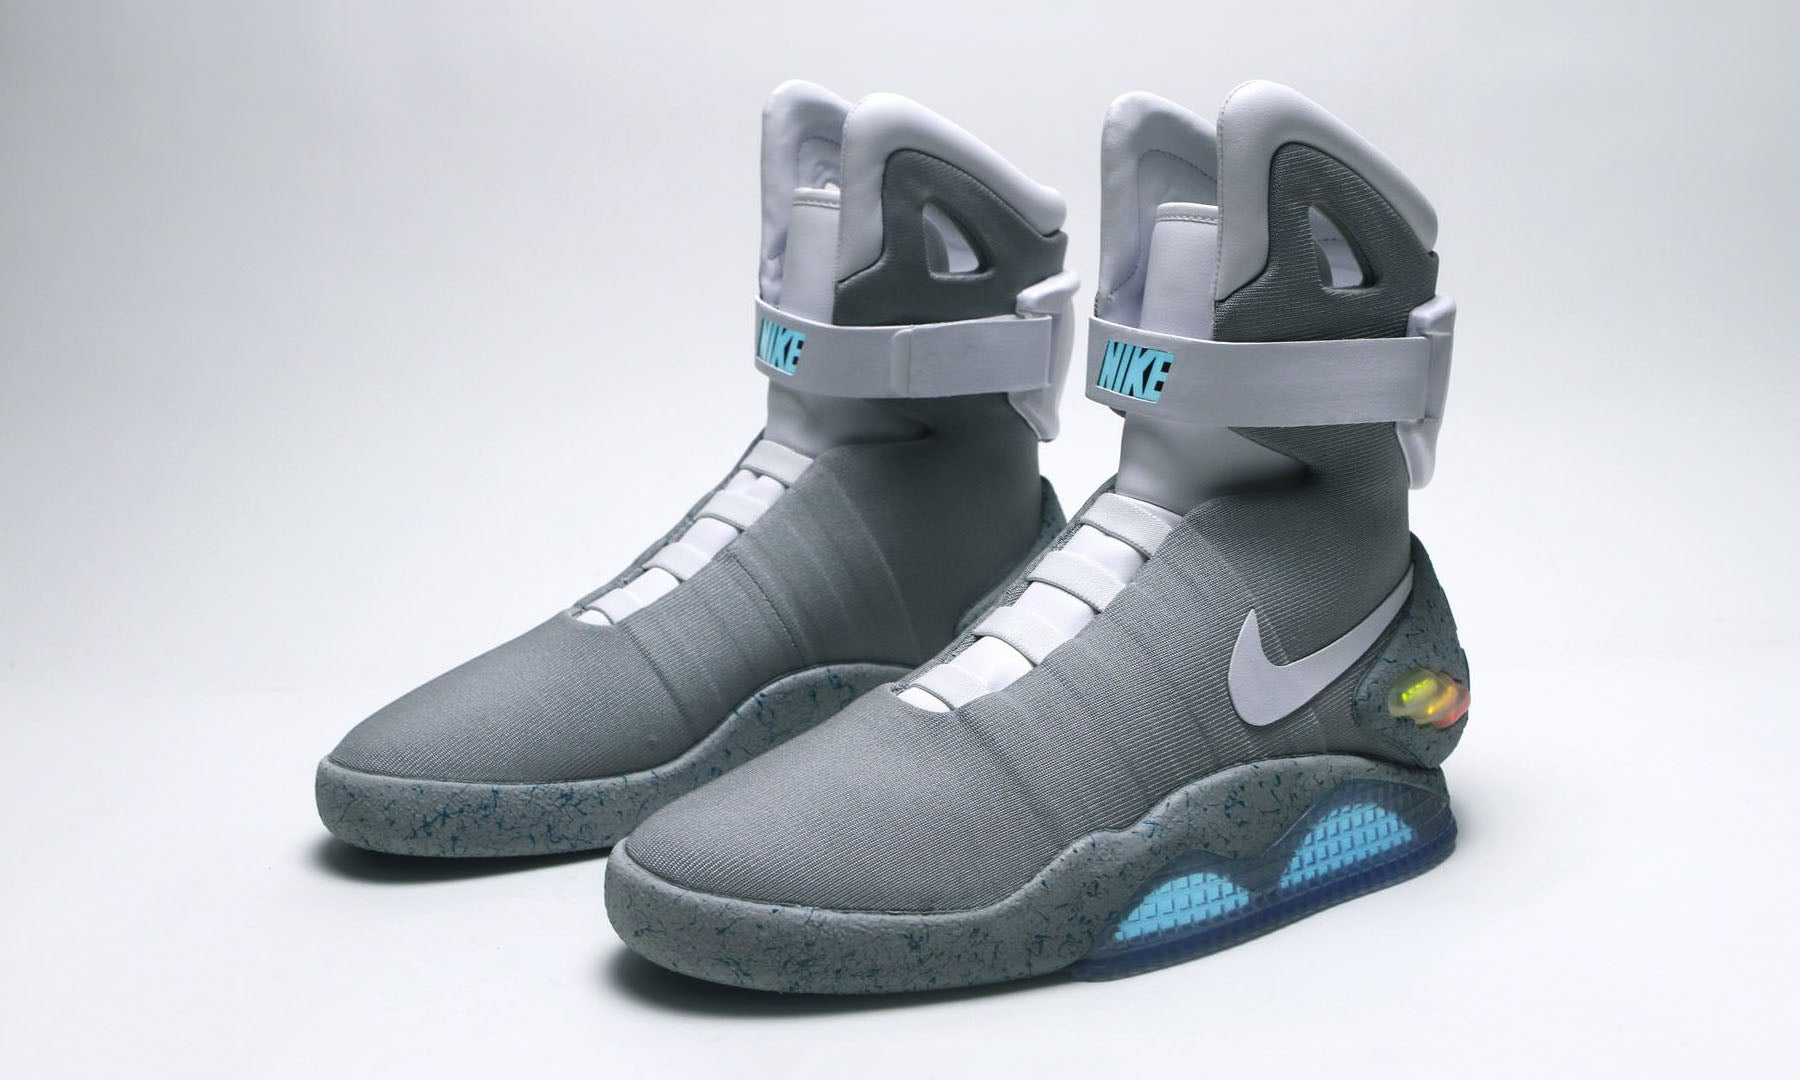 Nike's Self-Lacing Sneakers From 'Back To The Future II' Are Real